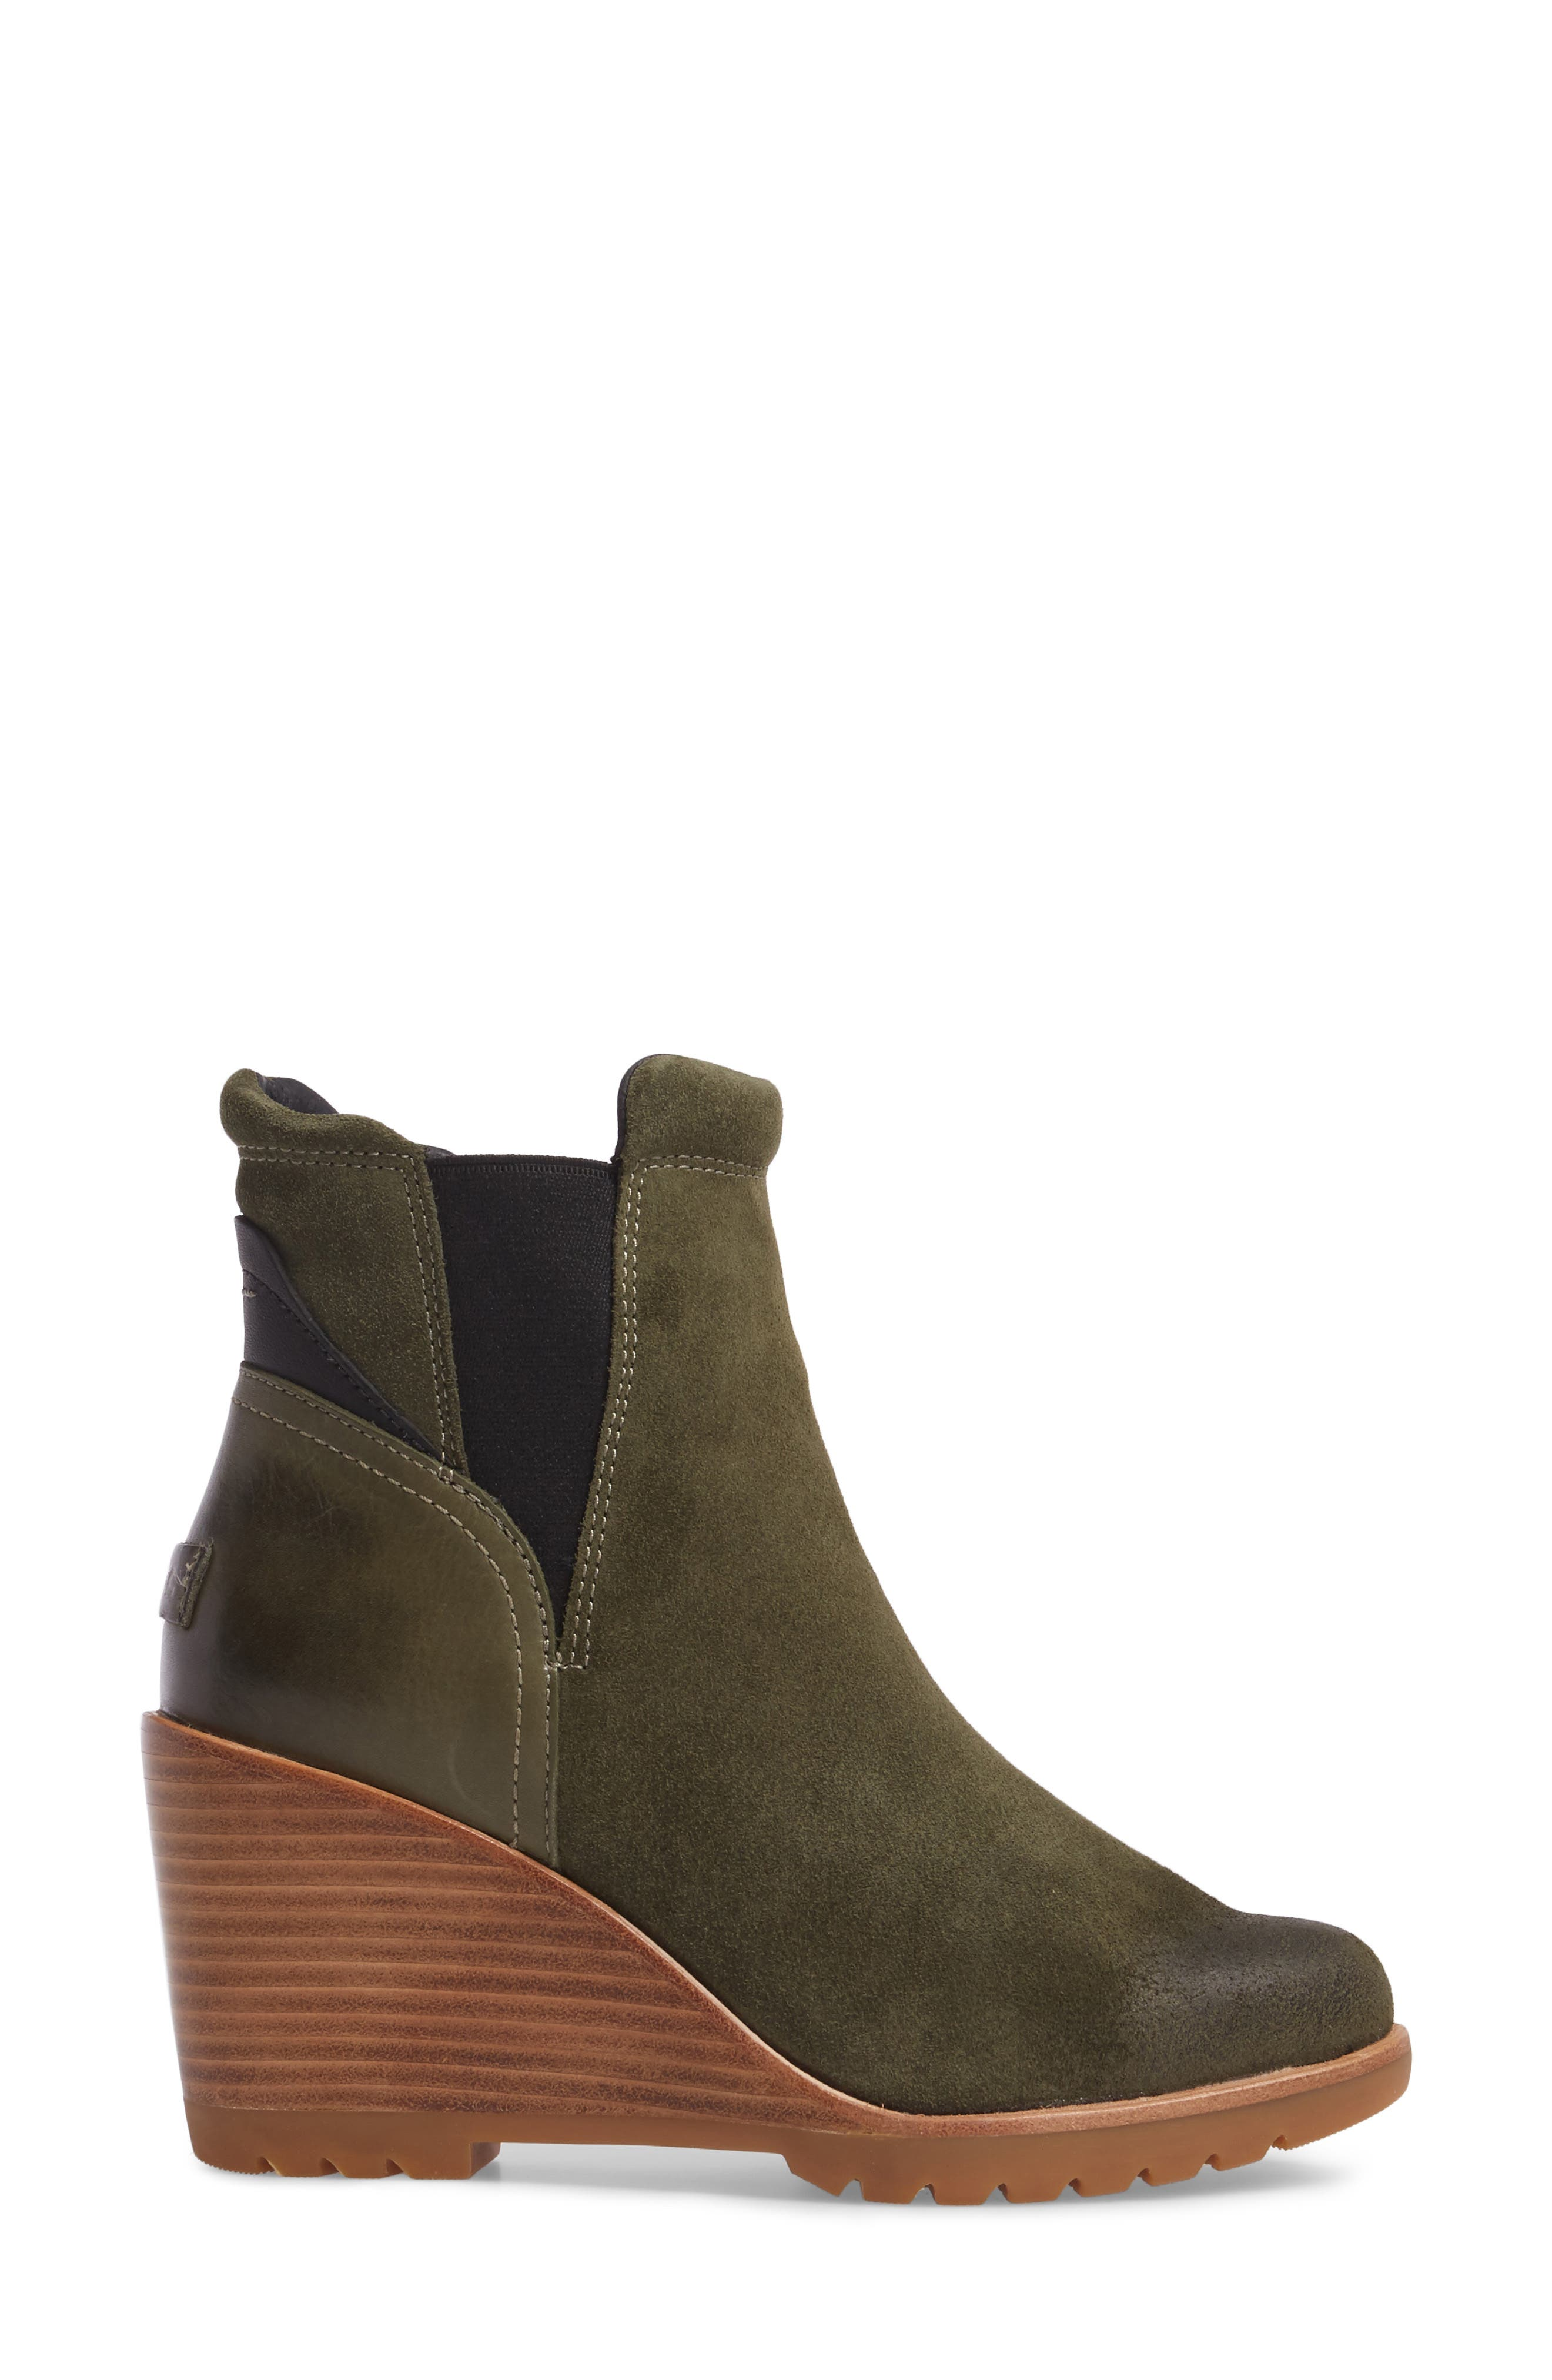 After Hours Chelsea Boot,                             Alternate thumbnail 15, color,